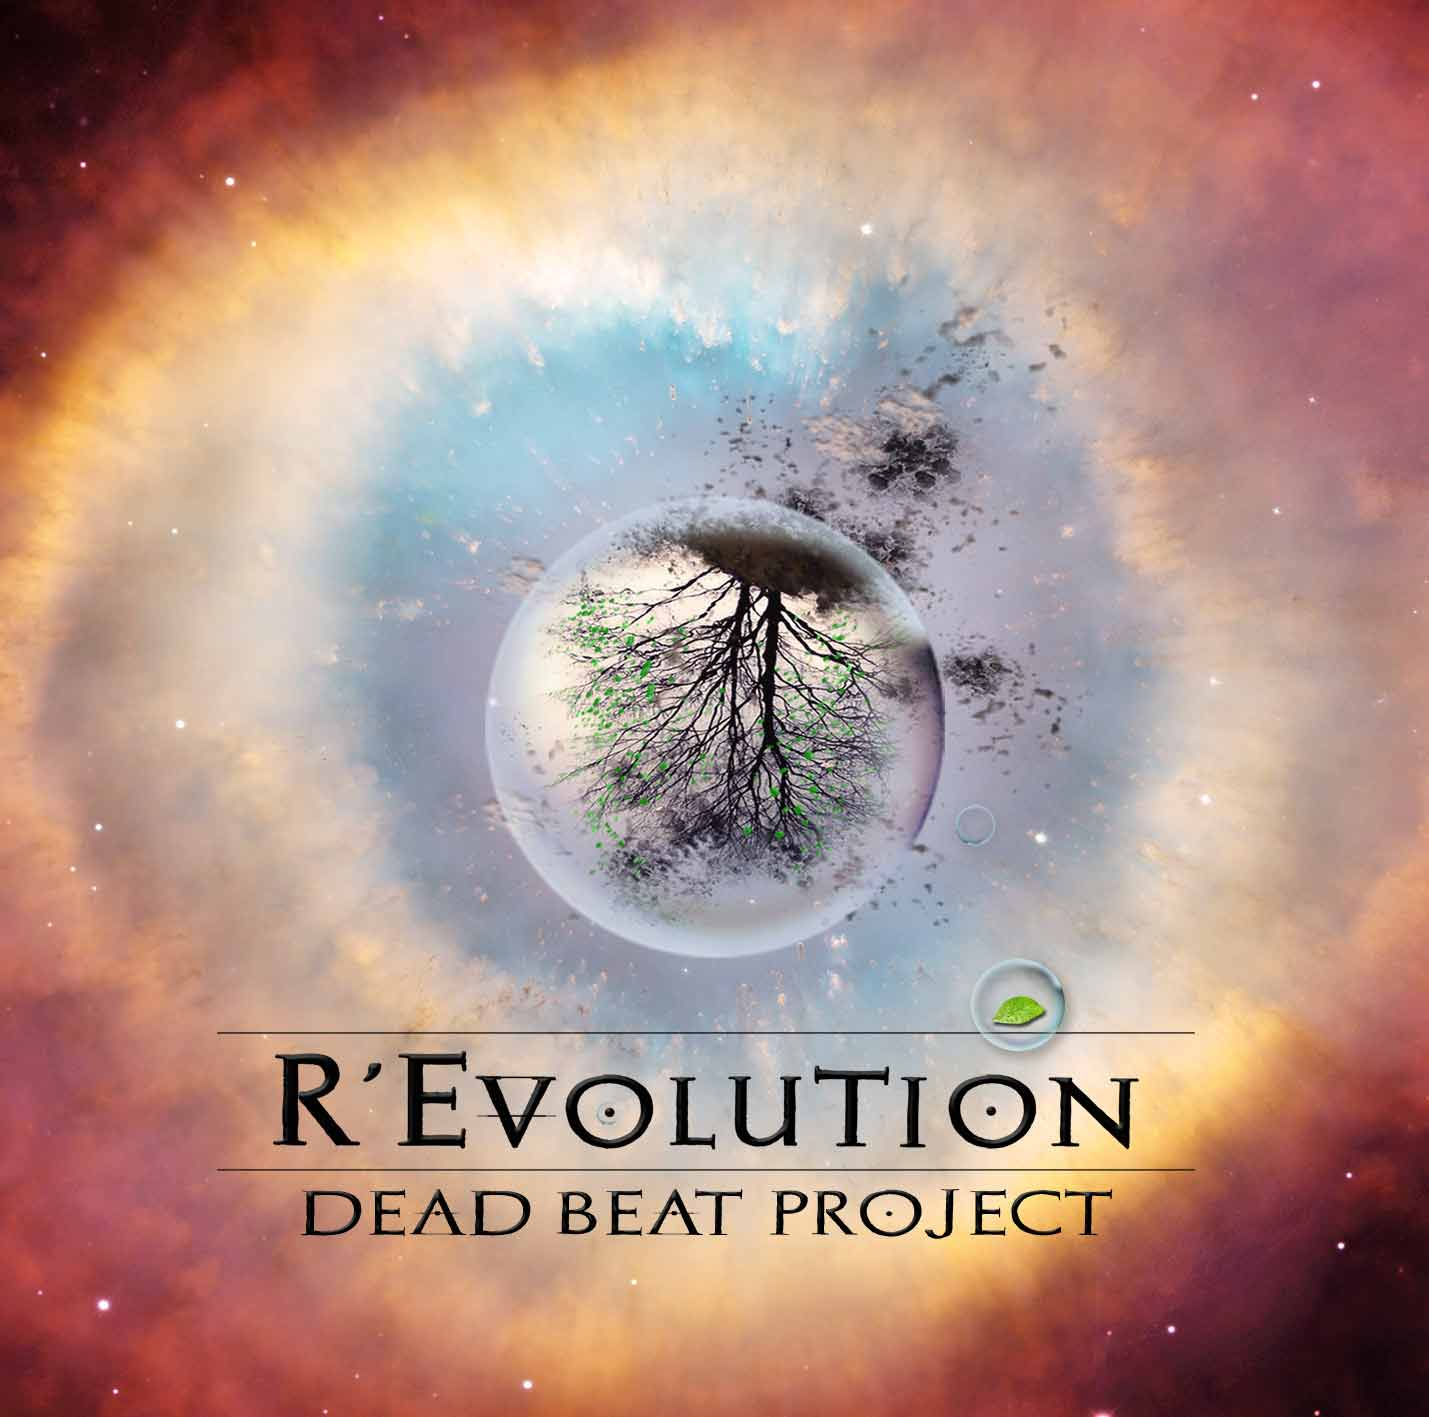 Couverture de l'album R'Evolution de Dead Beat Project